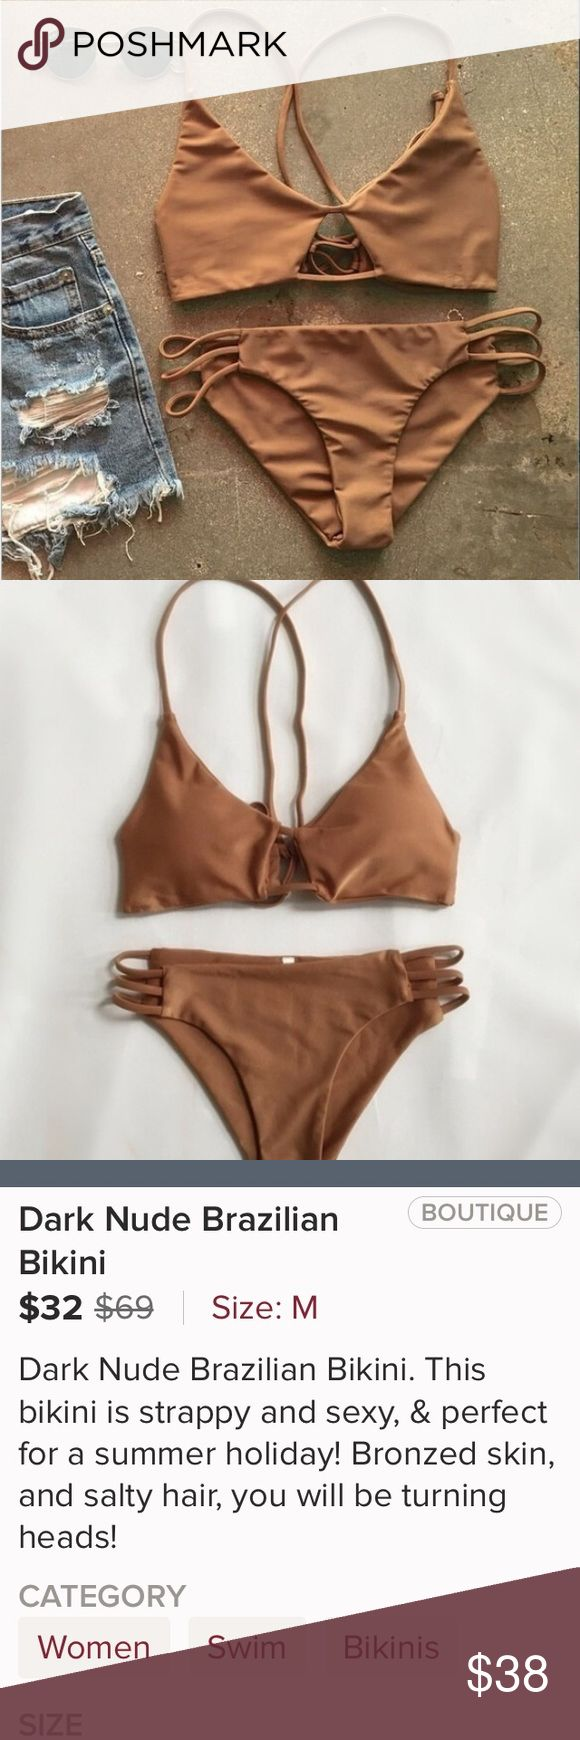 LAST ONE Dark Nude Brazilian Bikini. This bikini is strappy,  sexy and perfect for a summer holiday. Bronzed skin and salty hair, you will be turning heads. Swim Bikinis